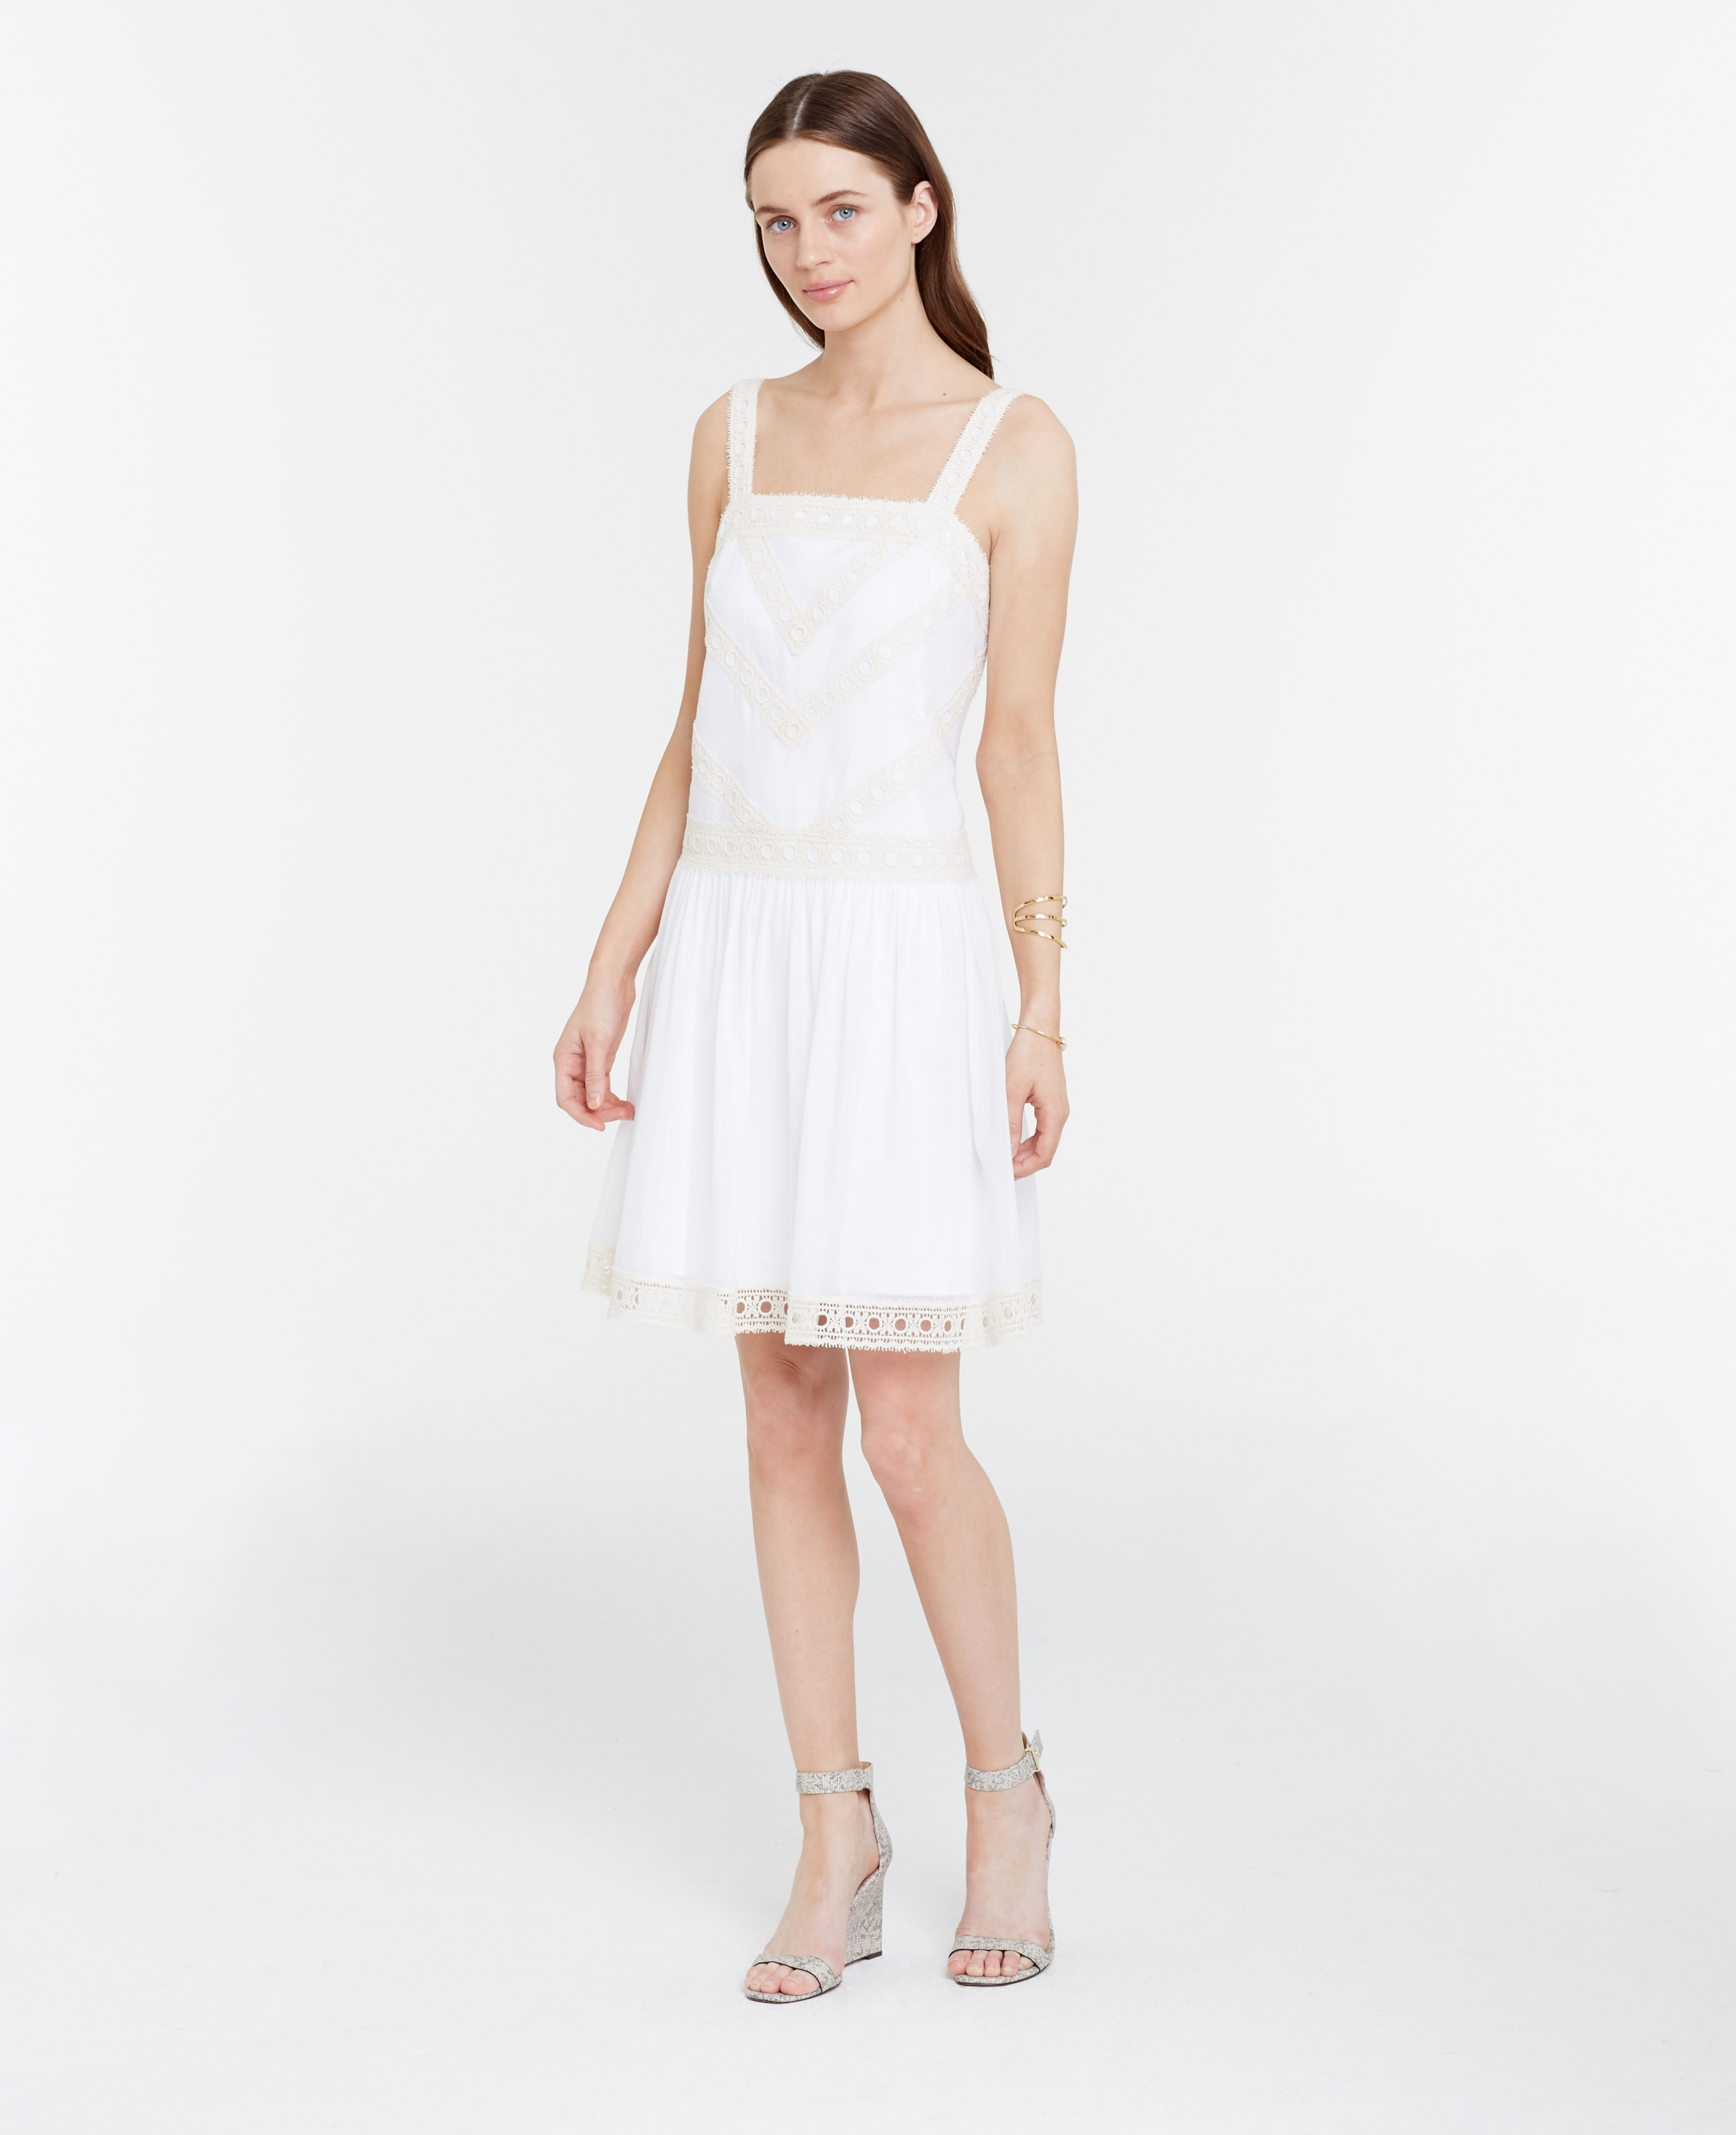 Lyst - Ann Taylor Embroidered Drop Waist Dress in White